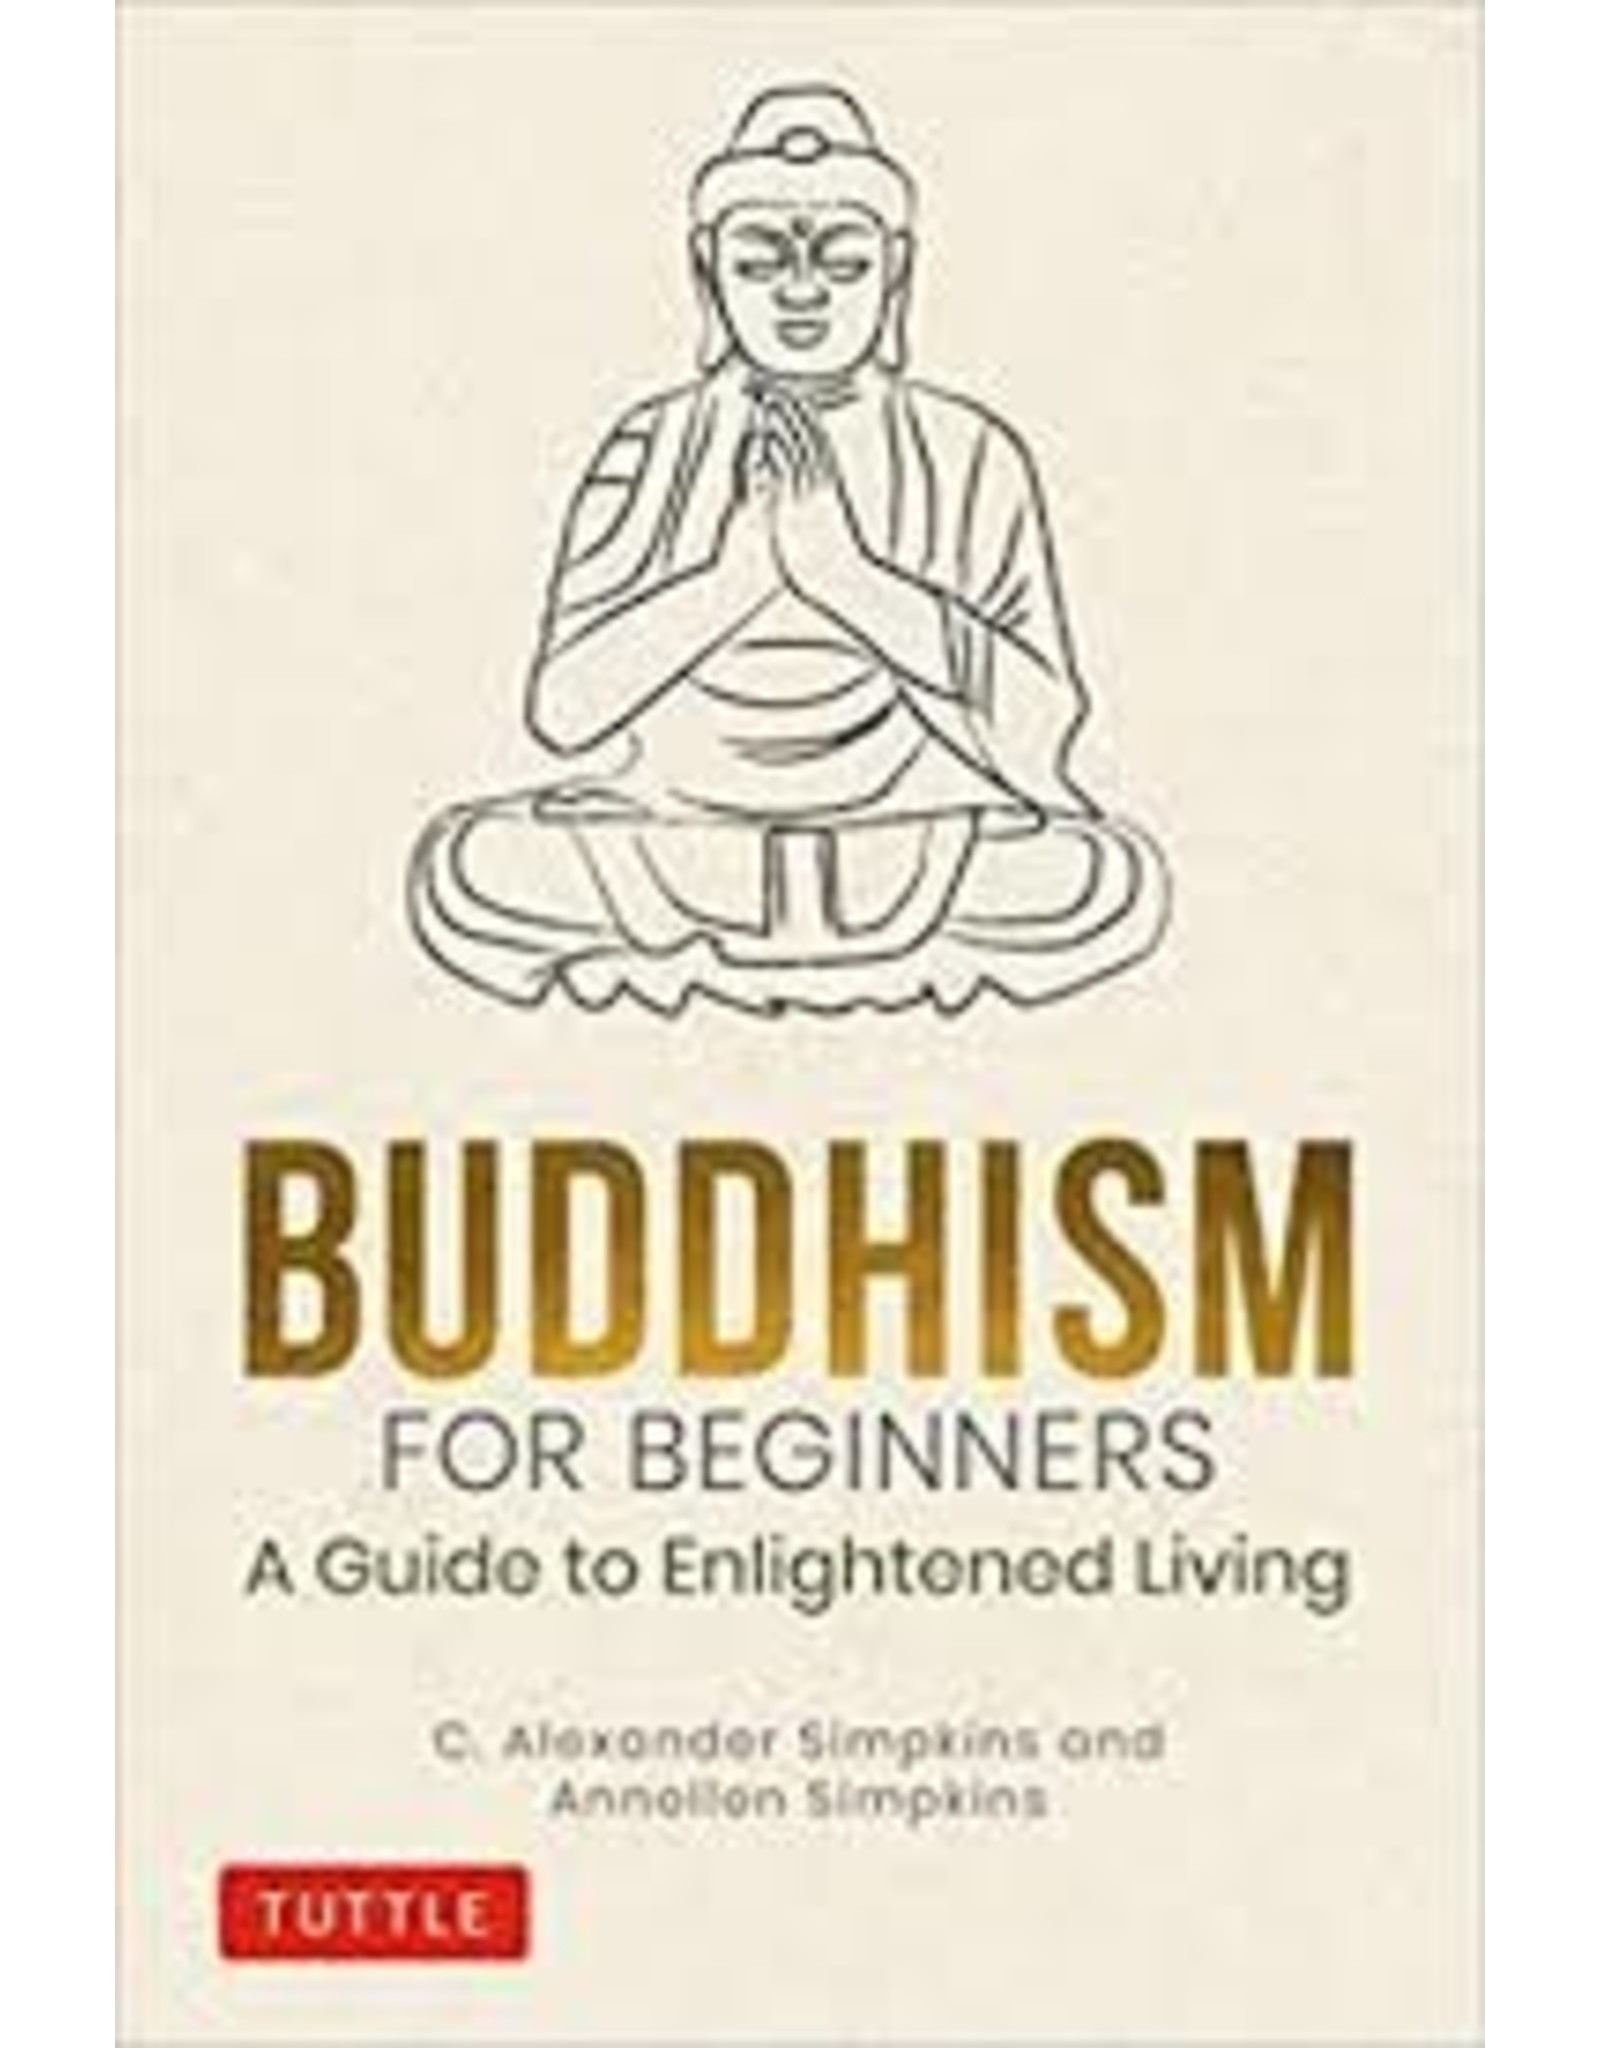 Books Buddhism for Beginners: A Guide to Enlightened Living by C. Alexander Simpkins and Annellen Simpkins